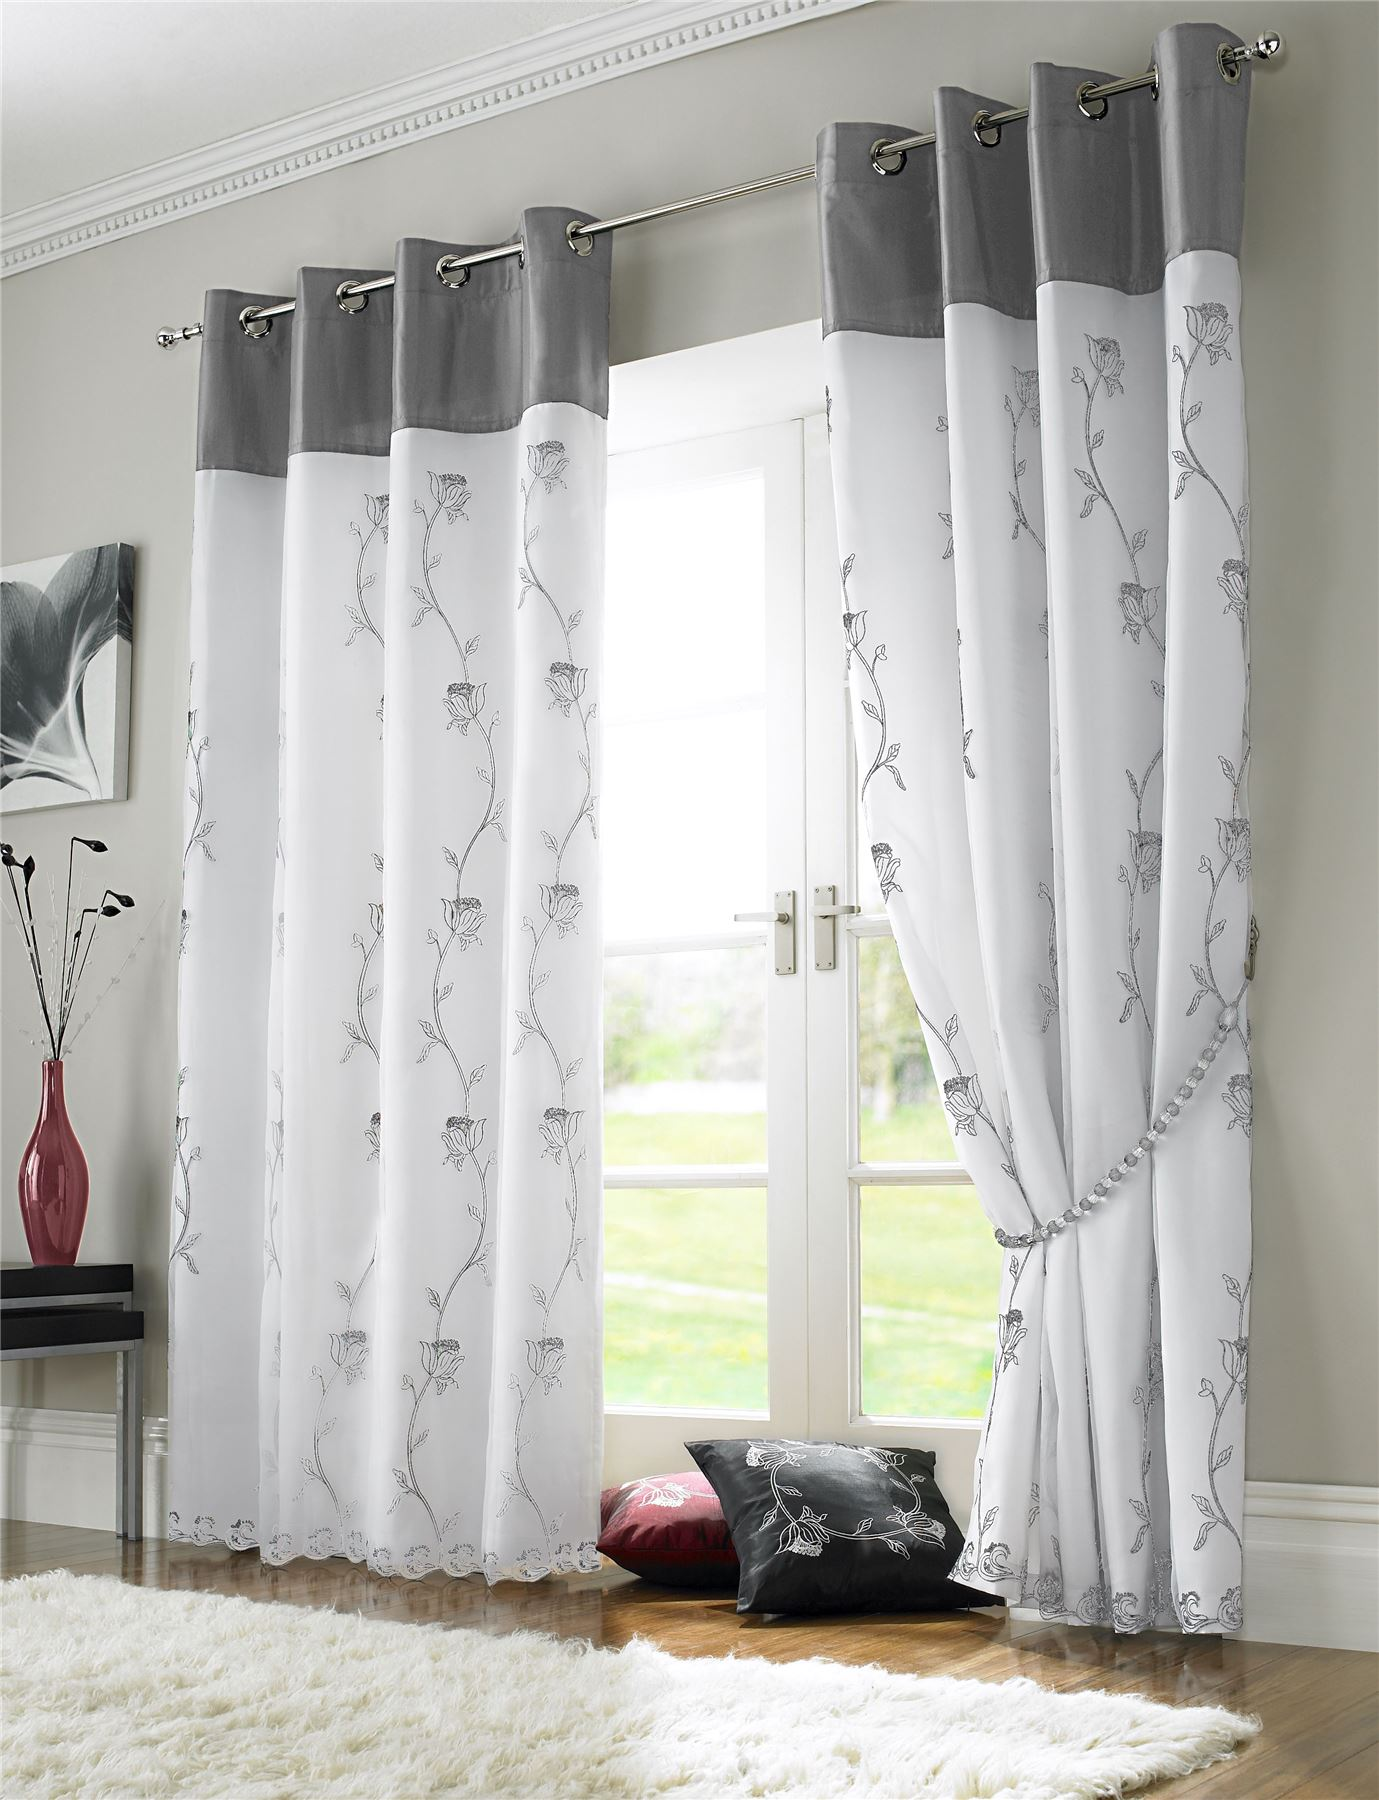 lined voile curtains white. Black Bedroom Furniture Sets. Home Design Ideas